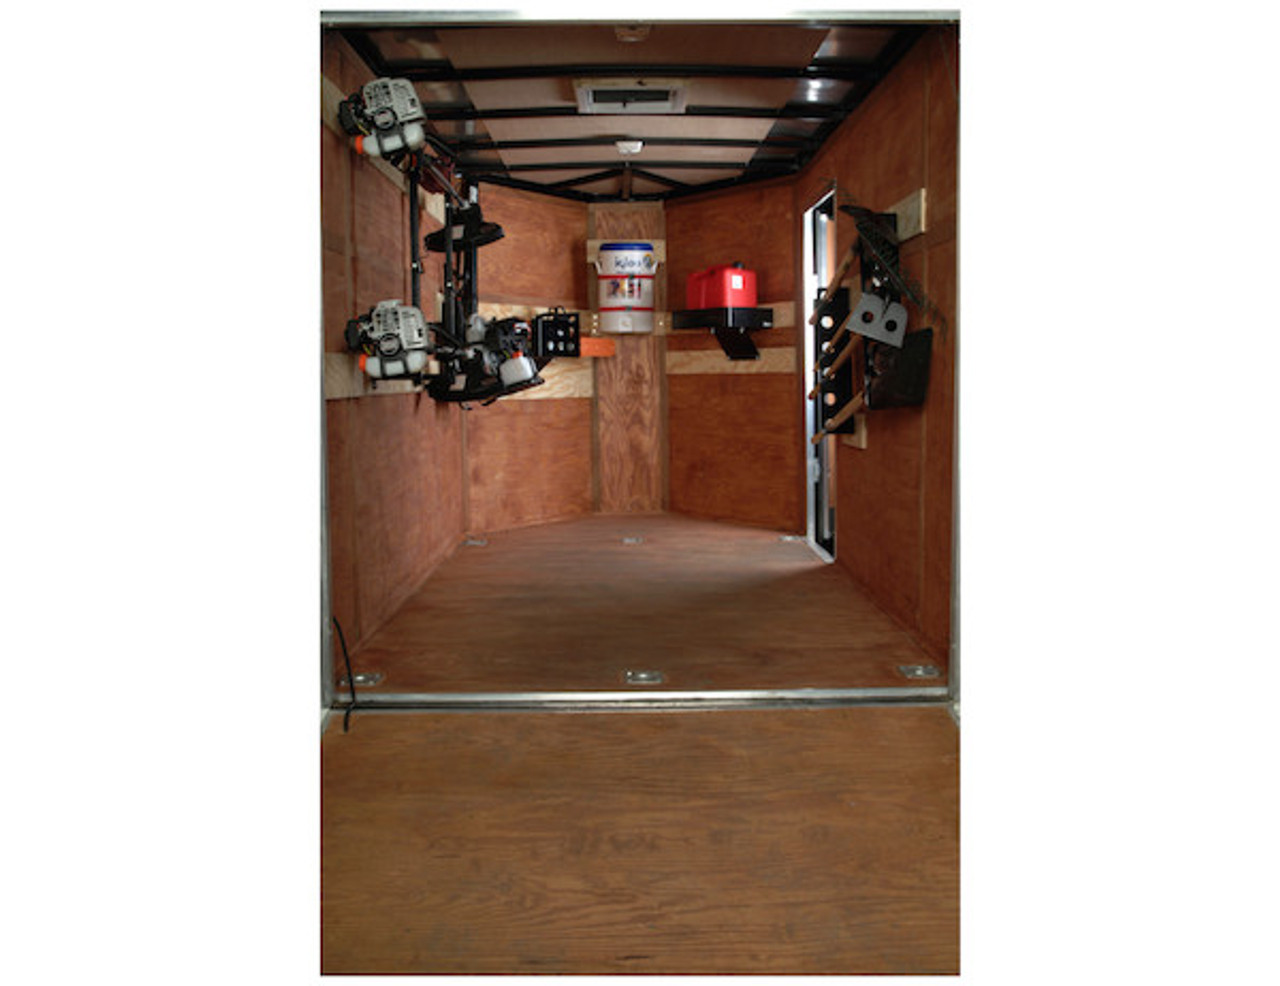 Buyers LT30 Gas Container Rack For Landscaping Trailers, Garages, Sheds, Construction Vehicles Picture # 3